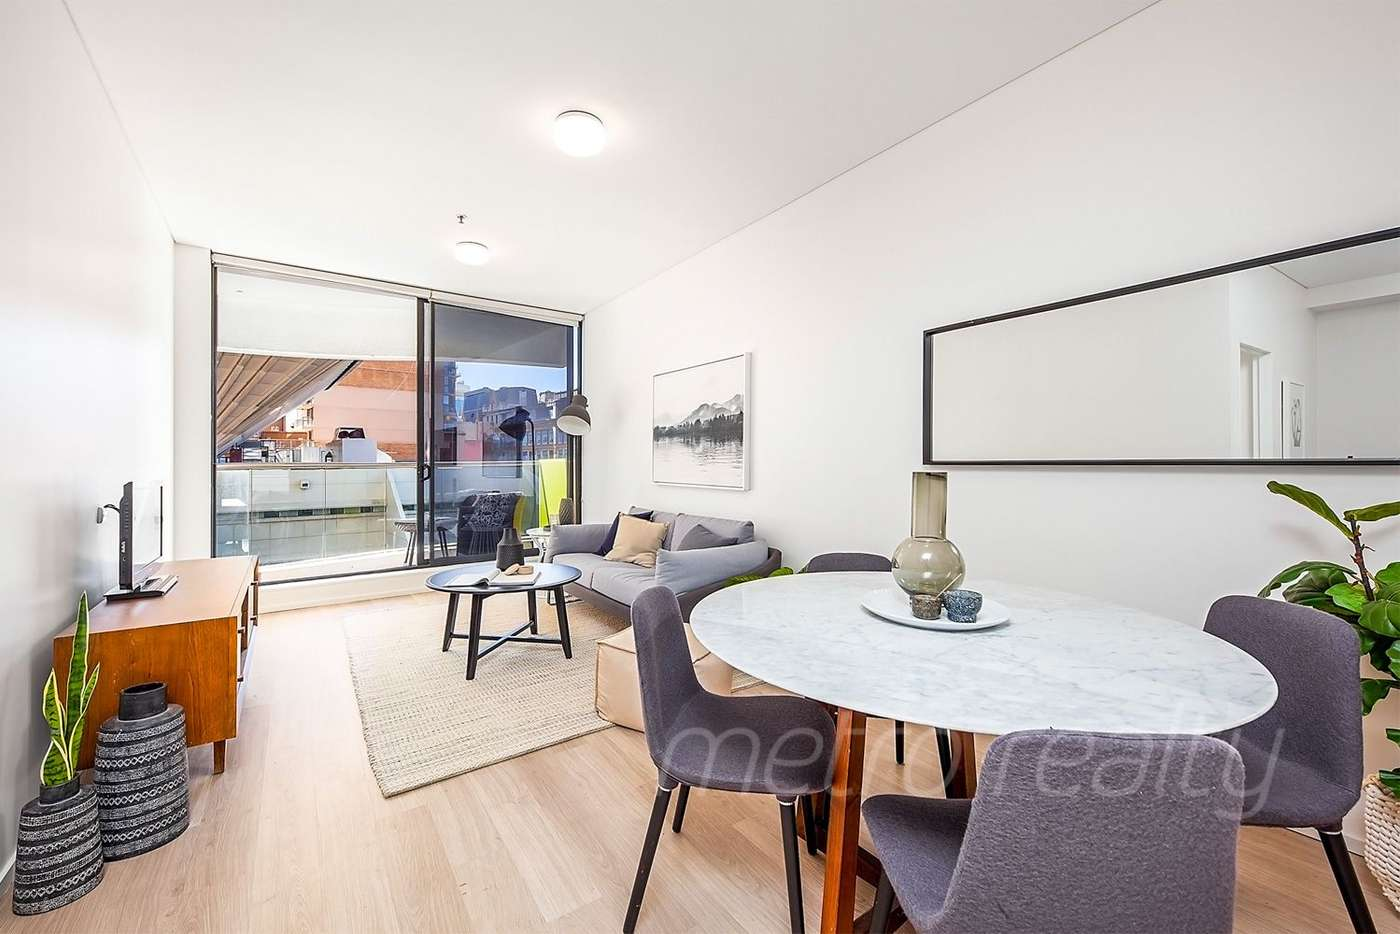 Main view of Homely apartment listing, 26/91 Goulburn St, Sydney NSW 2000